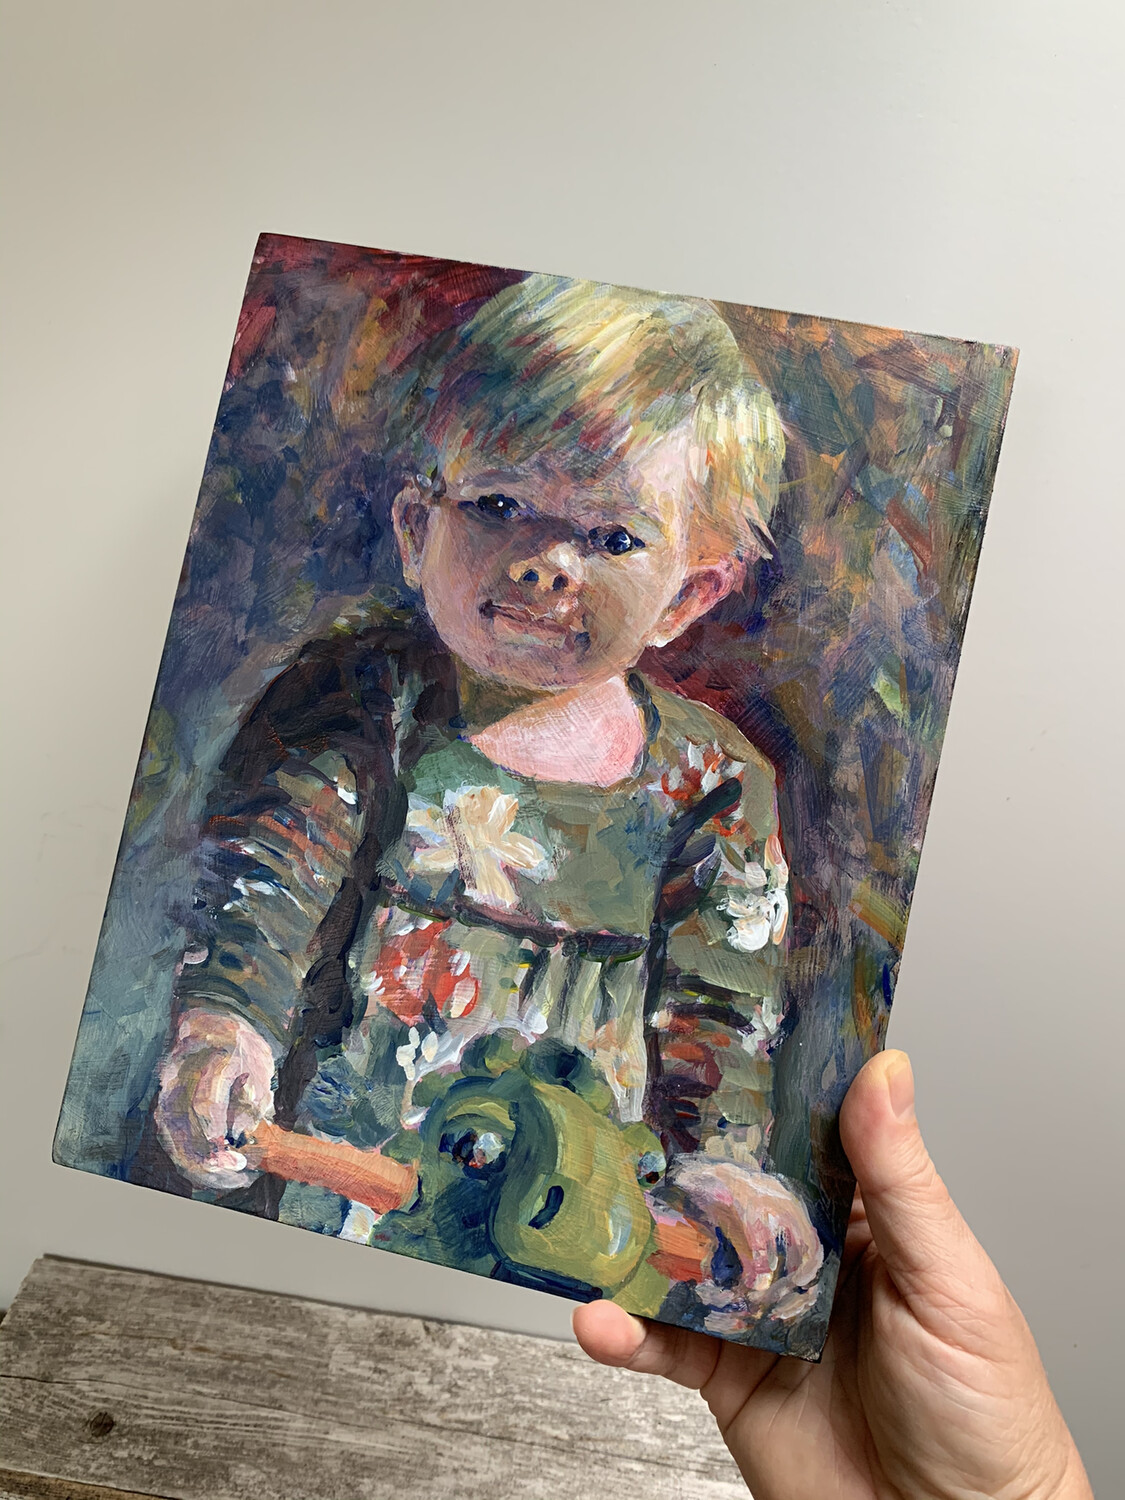 Custom Child's Portrait - 8x10 inch Acrylic Painting - Children's Portrait of Daughter Son Niece or Nephew Baby Newborn - Made To Order